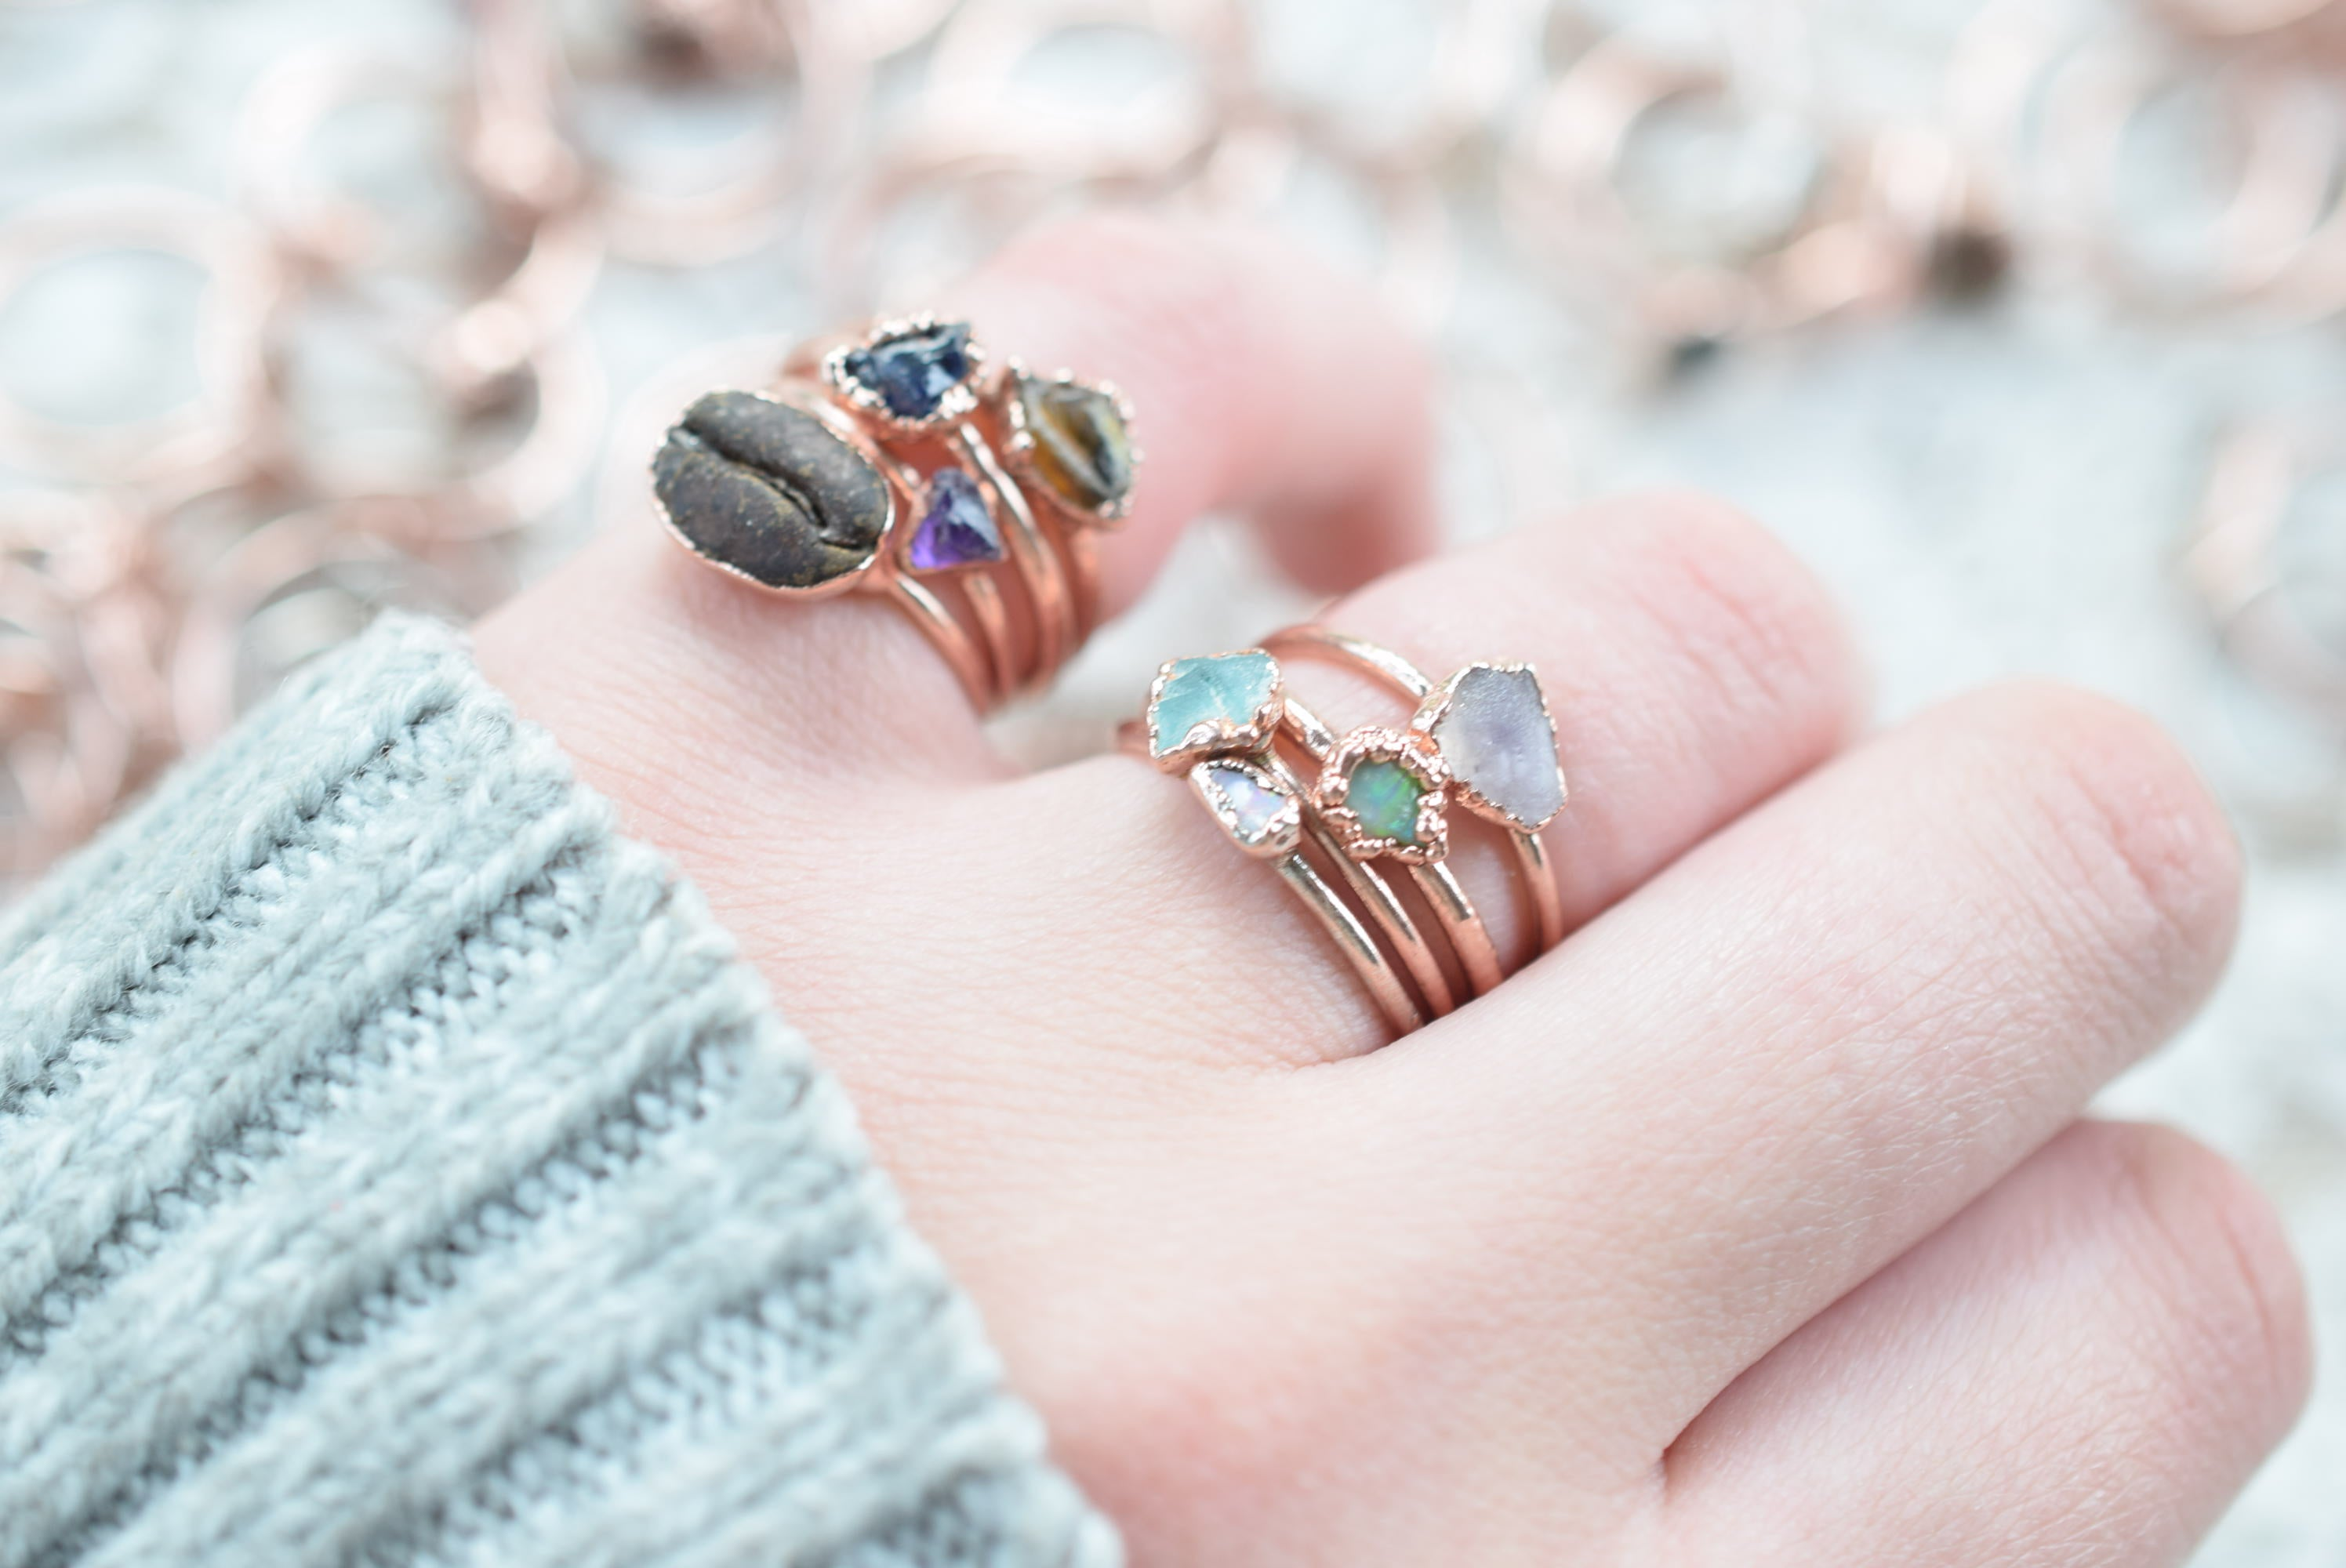 LUCKY DIP RINGS IN RECYCLED COPPER